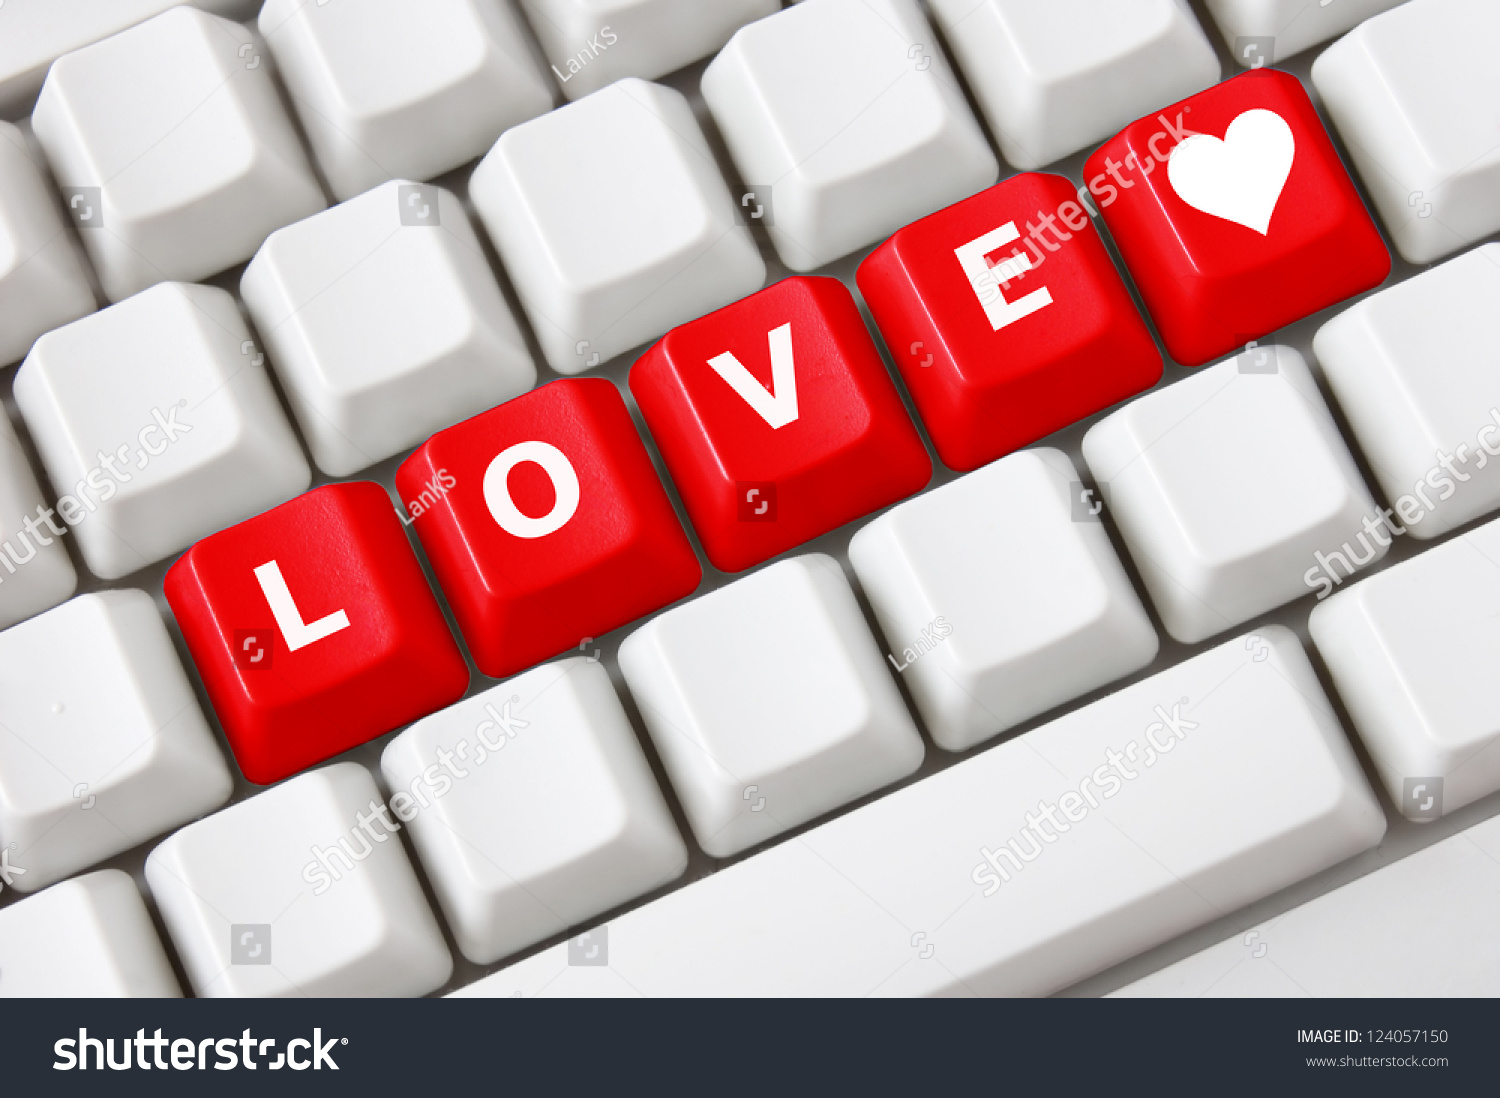 Smart keyboard color button love text stock photo 124057150 smart keyboard with color button love text and heart symbol biocorpaavc Images